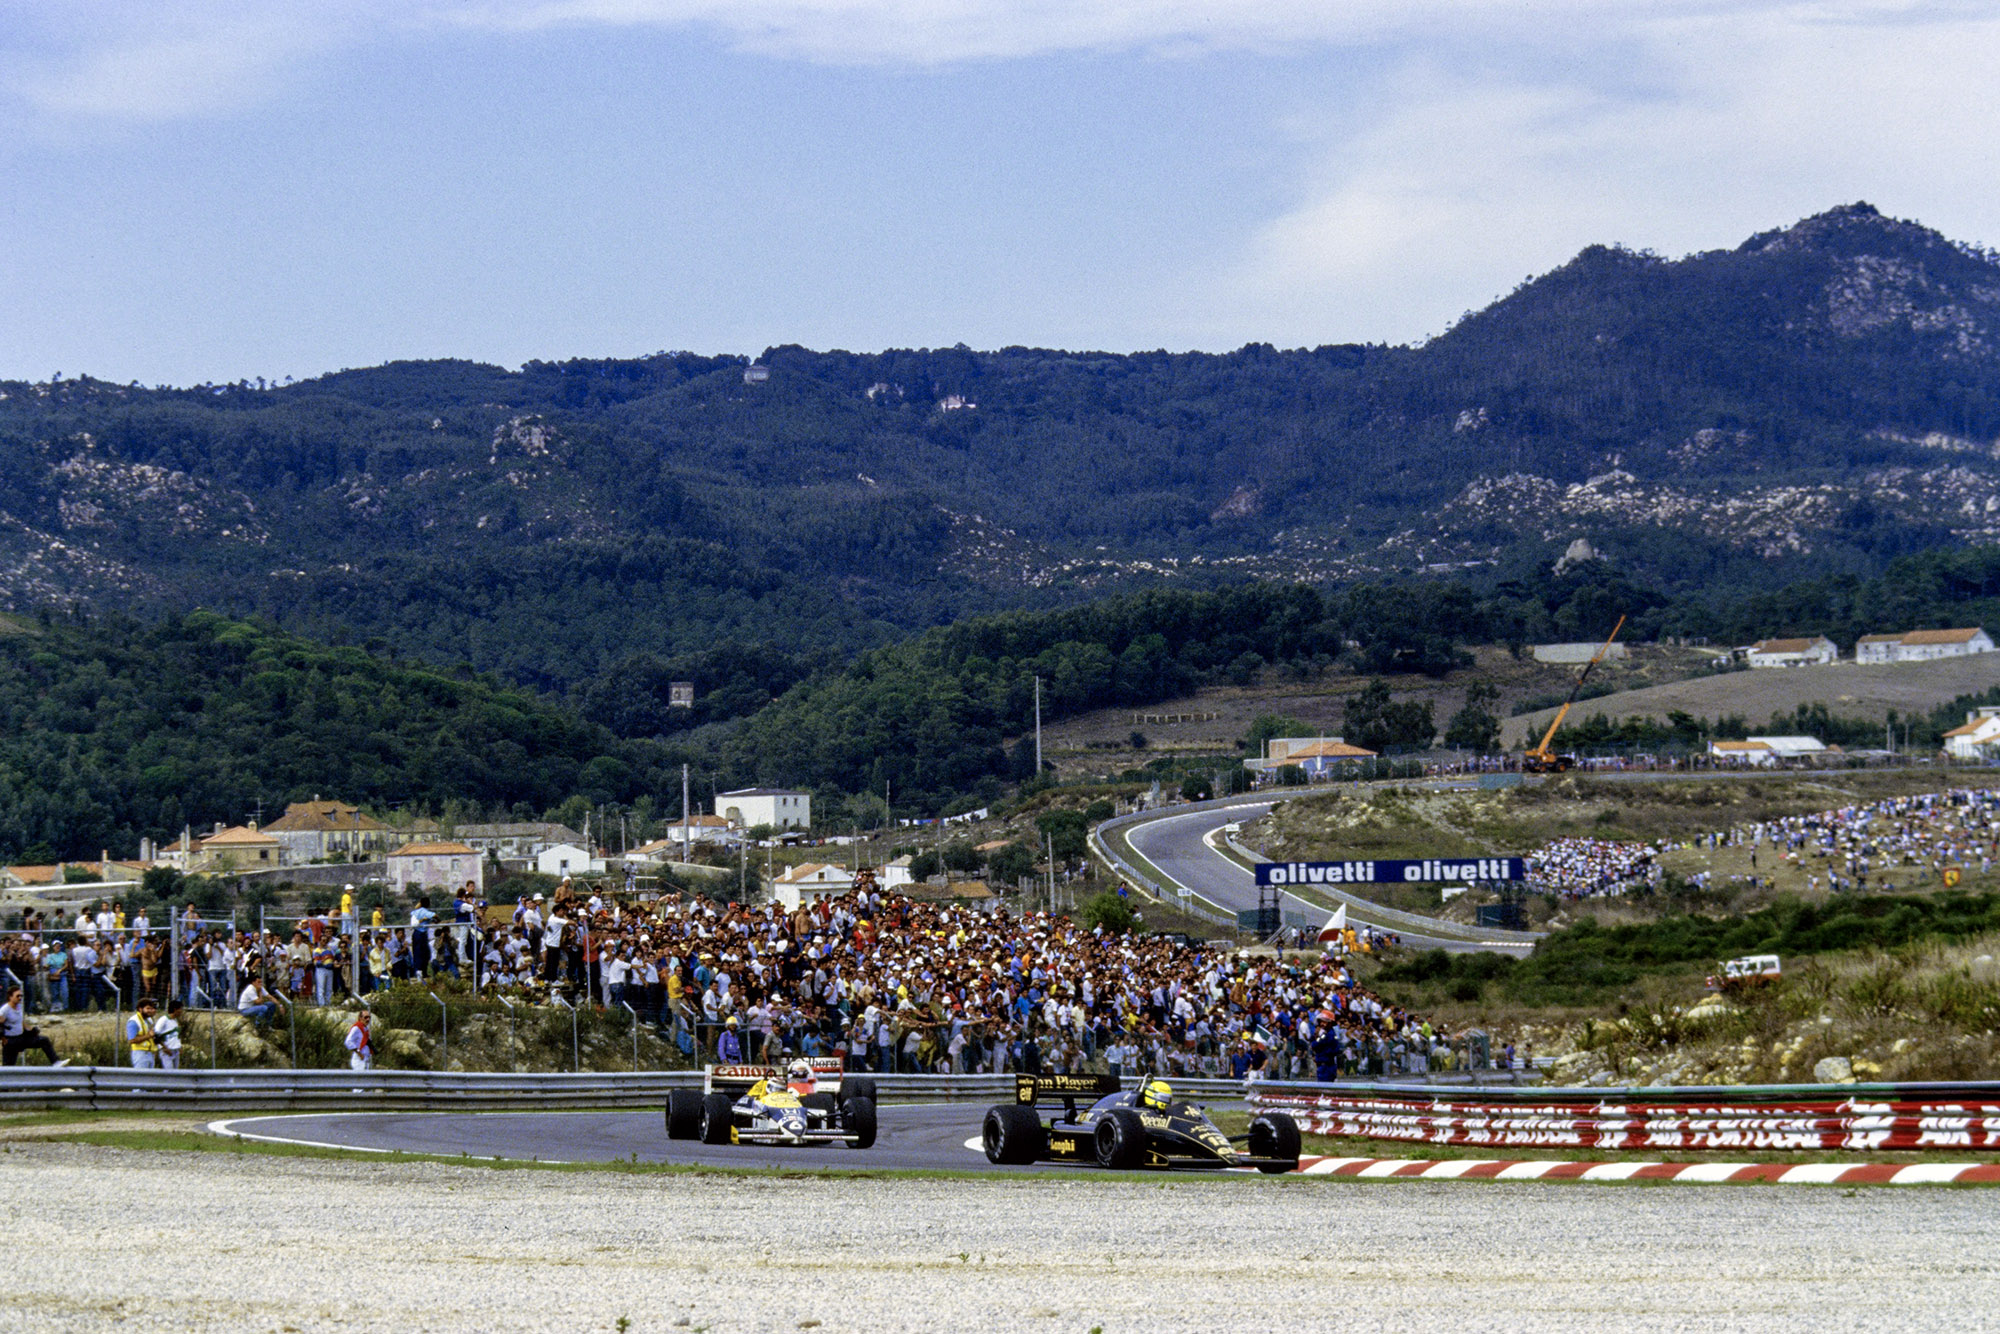 Ayrton Senna in his Lotus leads Nelson Piquet's Williams in the 1986 Portuguese Grand Prix